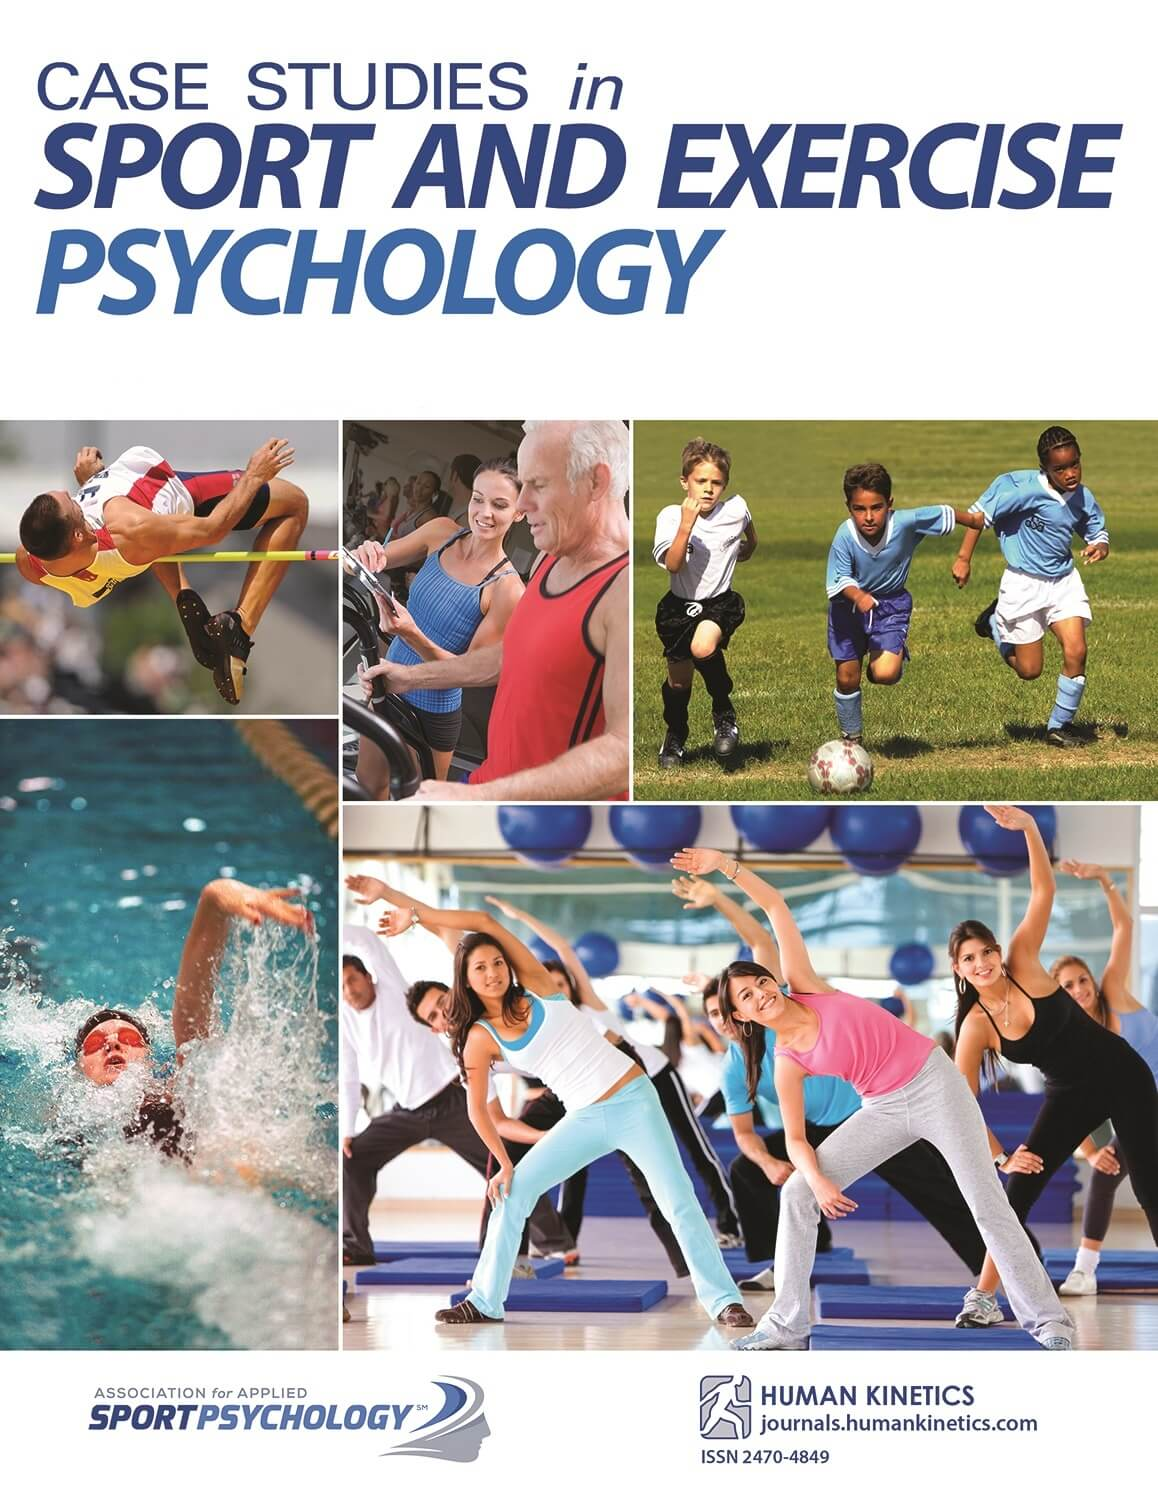 Case Studies in Sport and Exercise Psychology | Human Kinetics